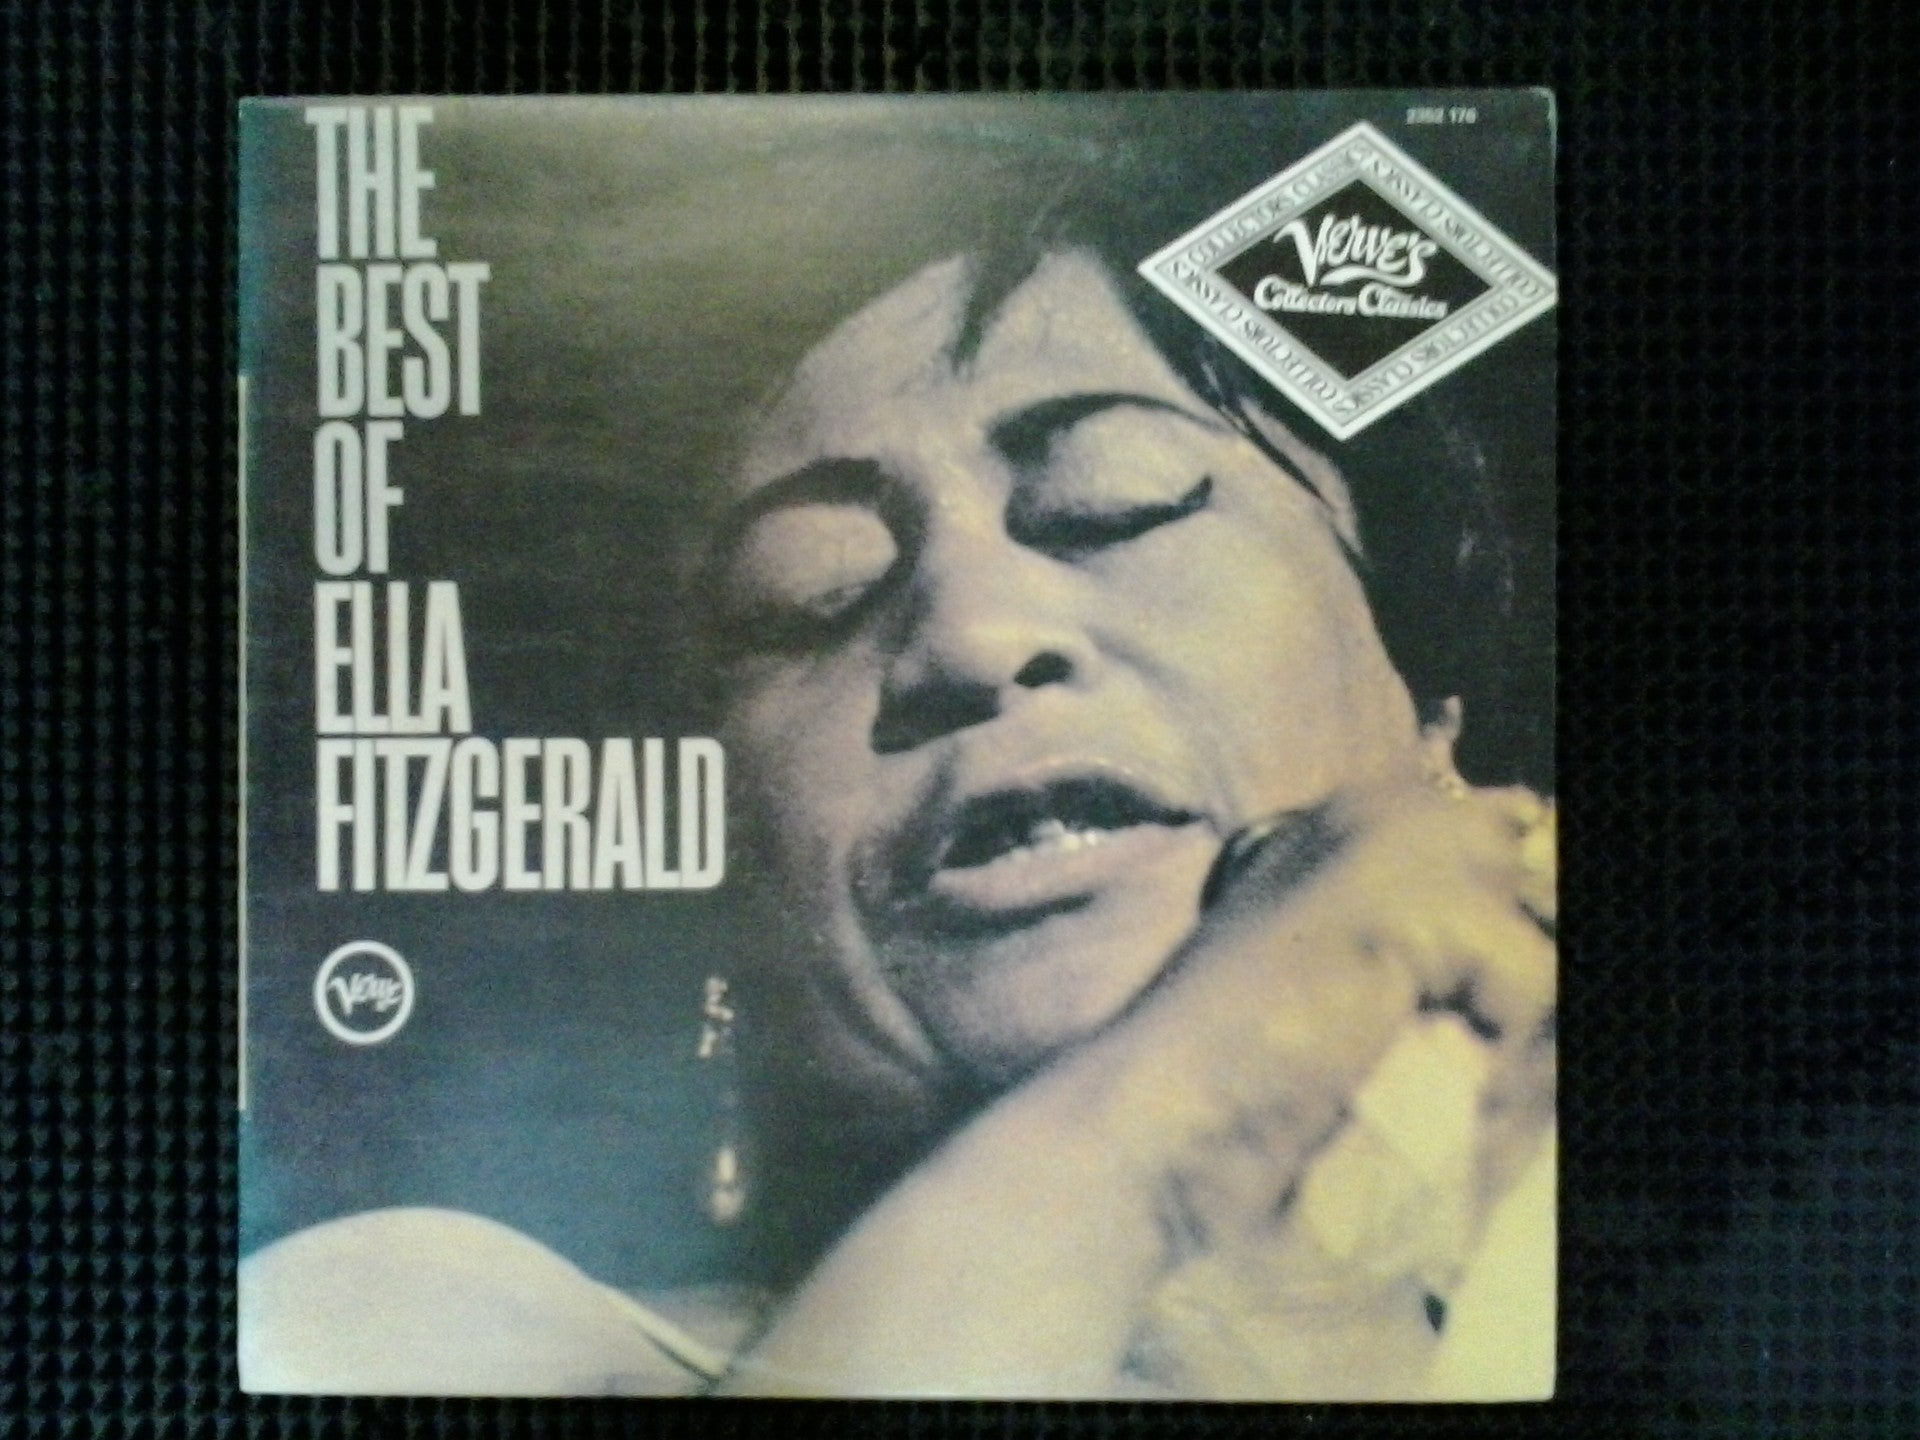 FITZGERALD ELLA-THE BEST OF LP EX COVER VG+